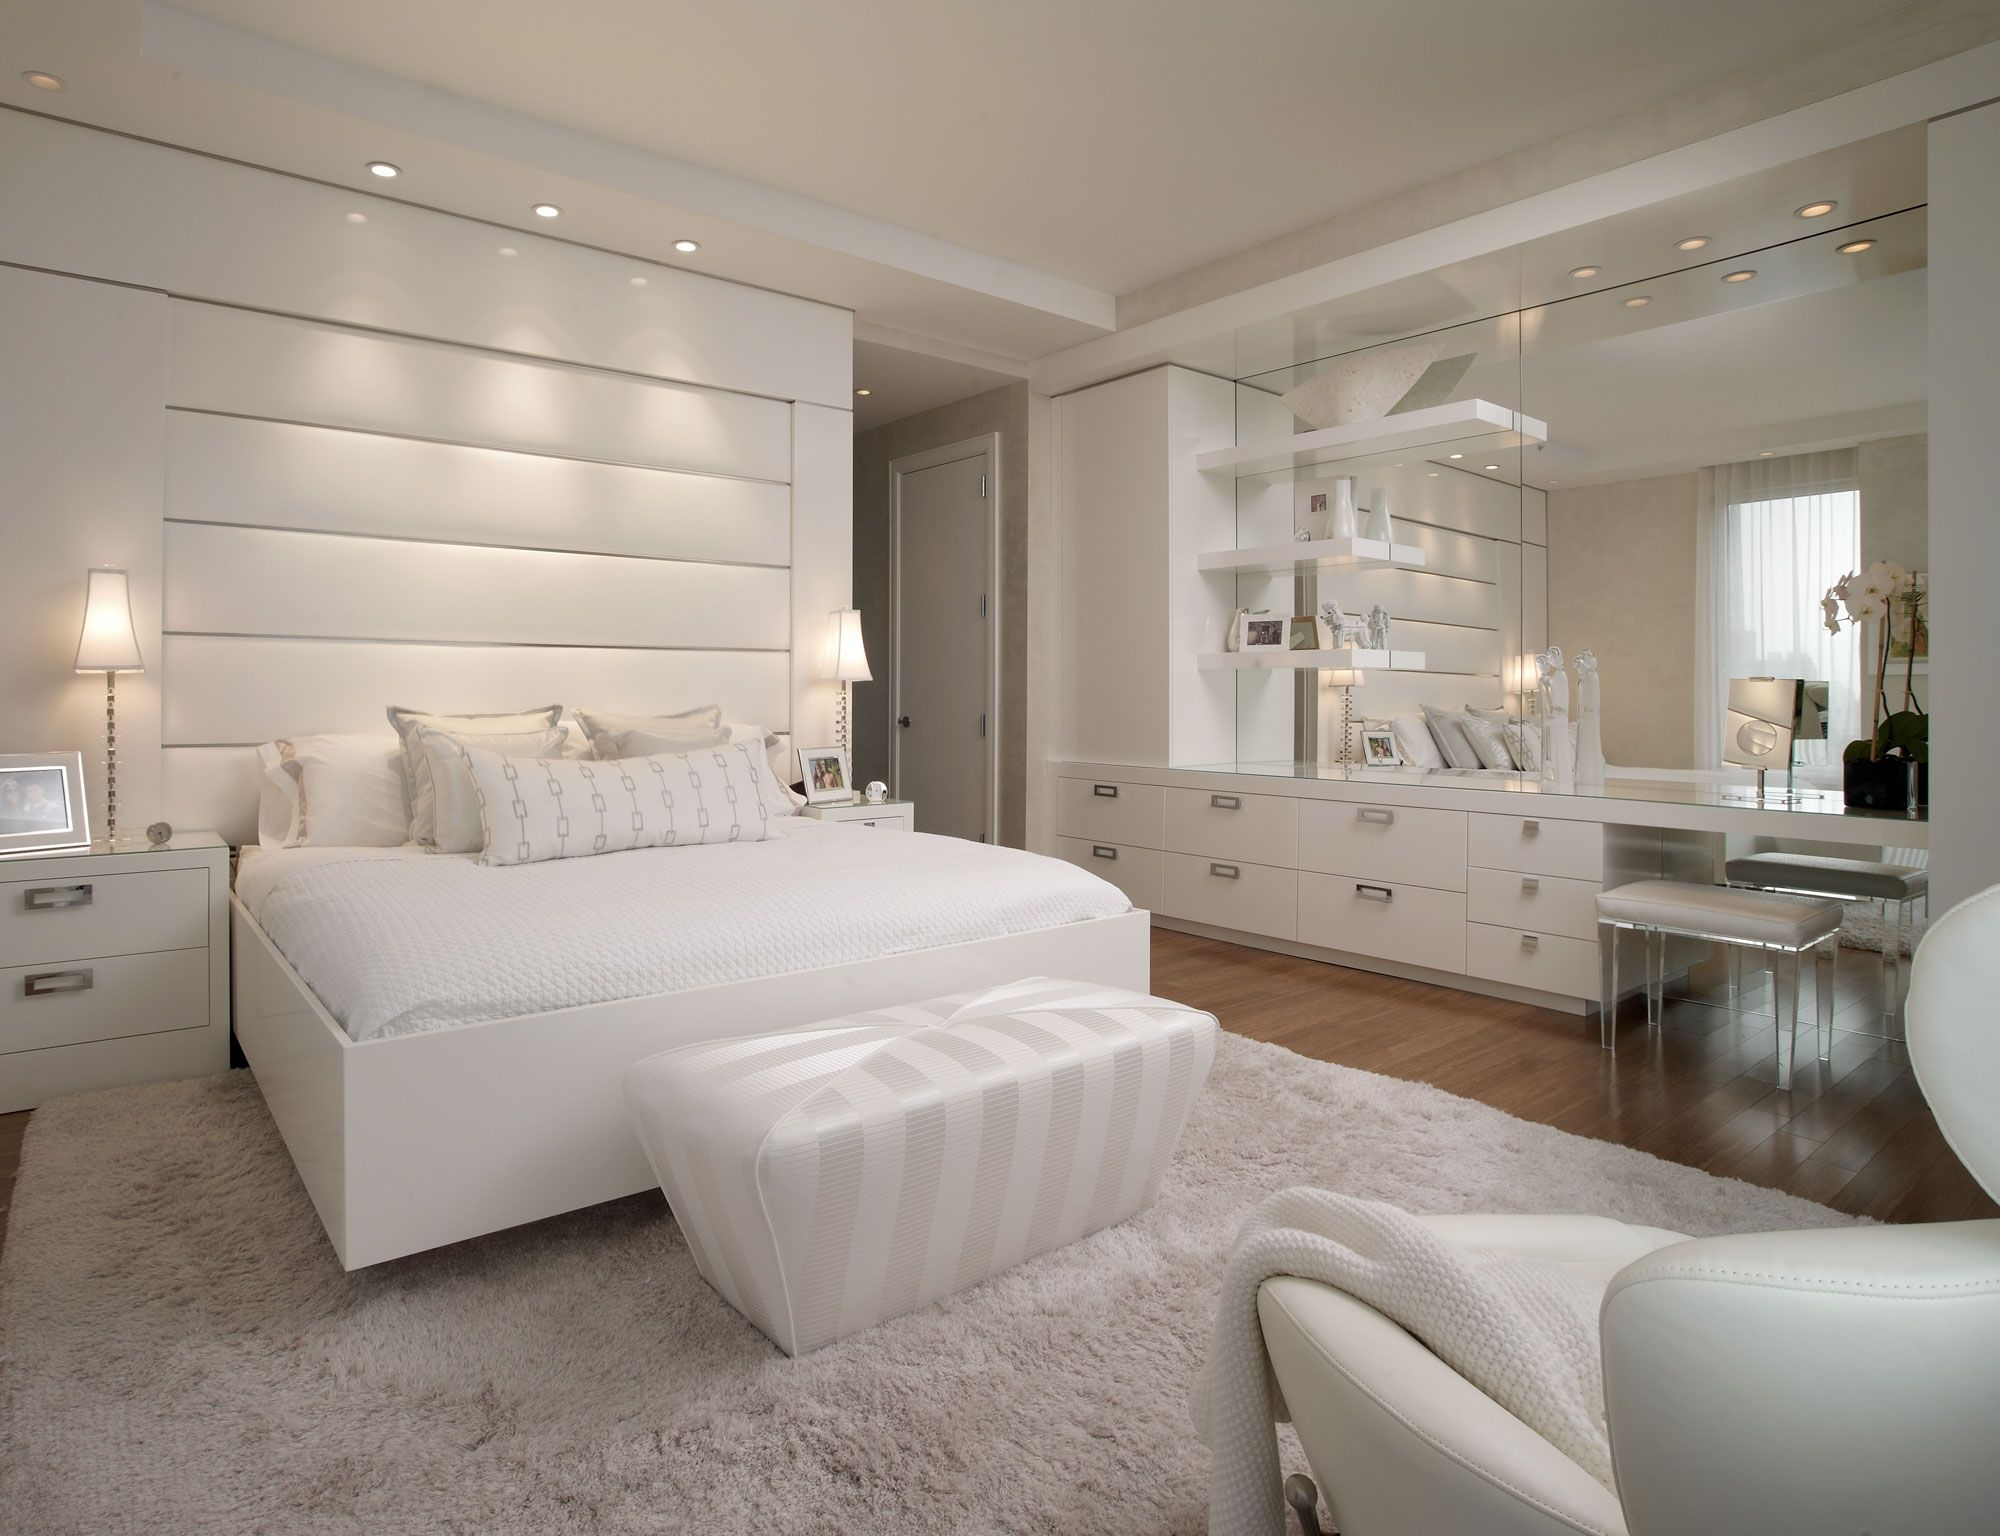 Luxury all white bedroom decorating ideas amazing for Amazing bedroom ideas